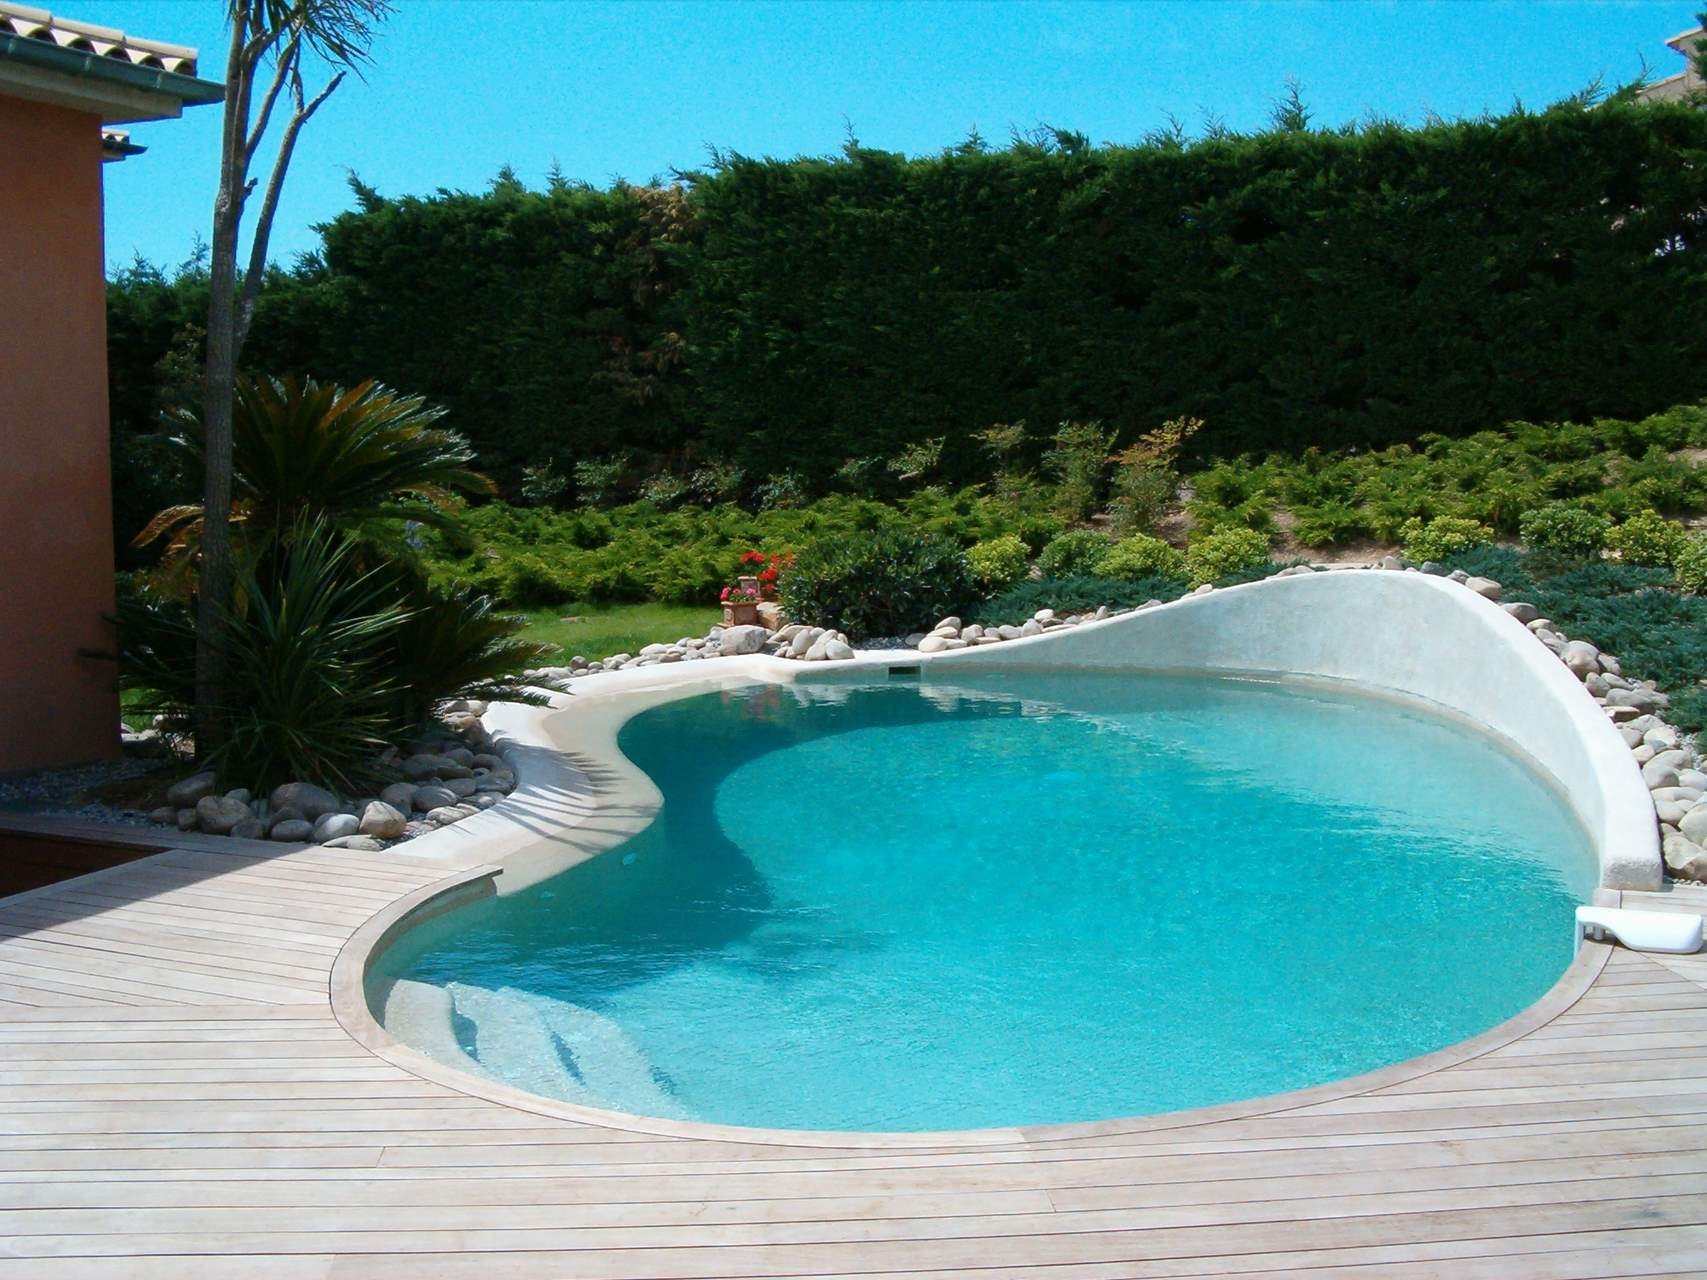 Architecte carry le rouet transformation d 39 une villa for Alentour piscine